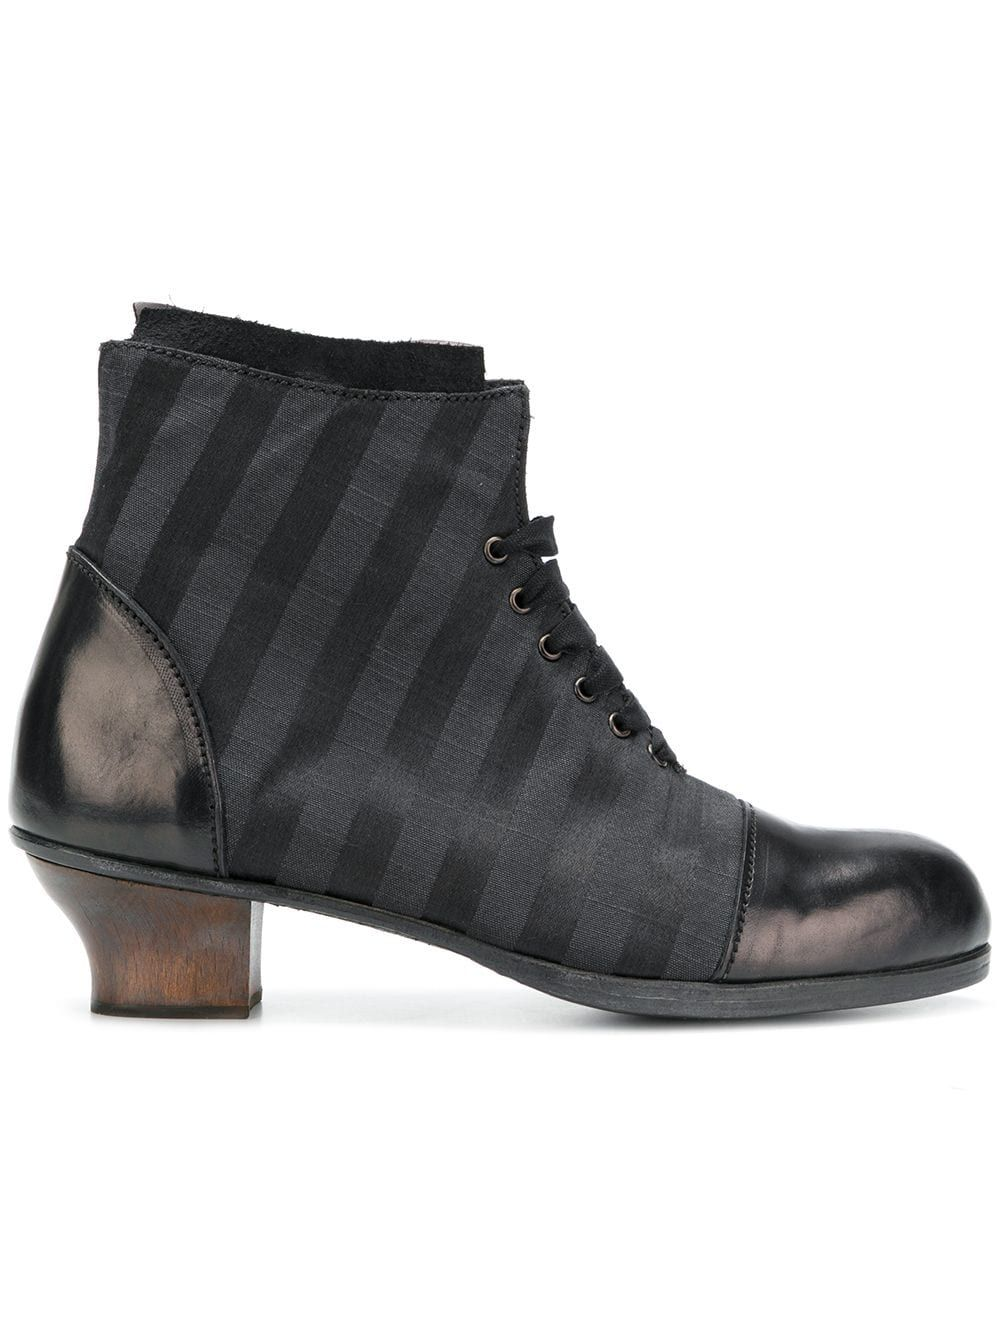 08cfe348ec4 Munoz Vrandecic striped lace-up ankle boots - Black in 2019 ...